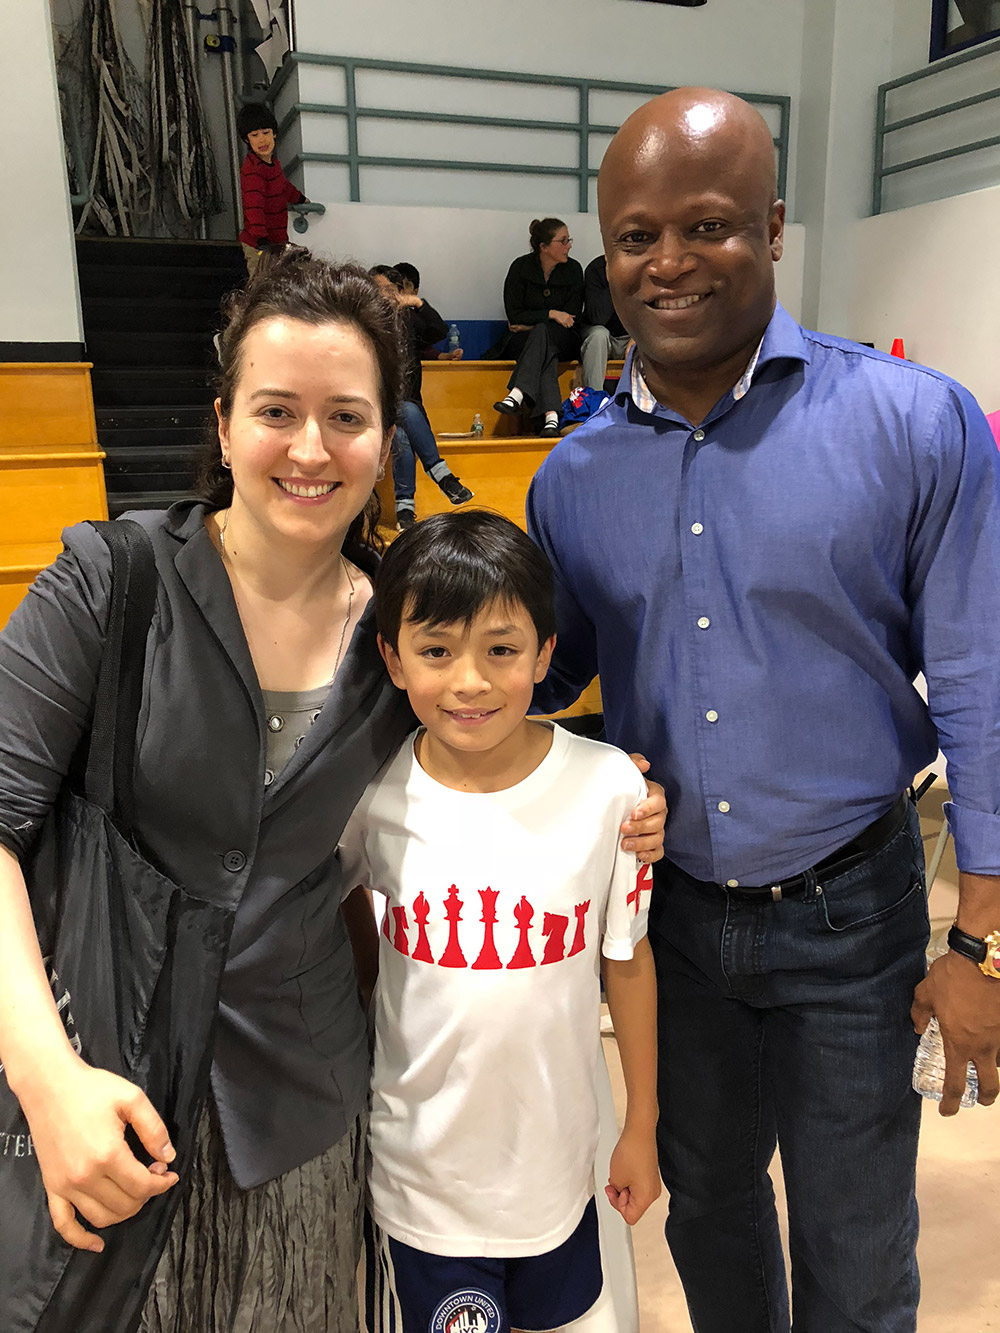 Oliver with GM Maurice Ashley and GM Irina Krush at the Charity Chess Championship in New York City. May, 2018